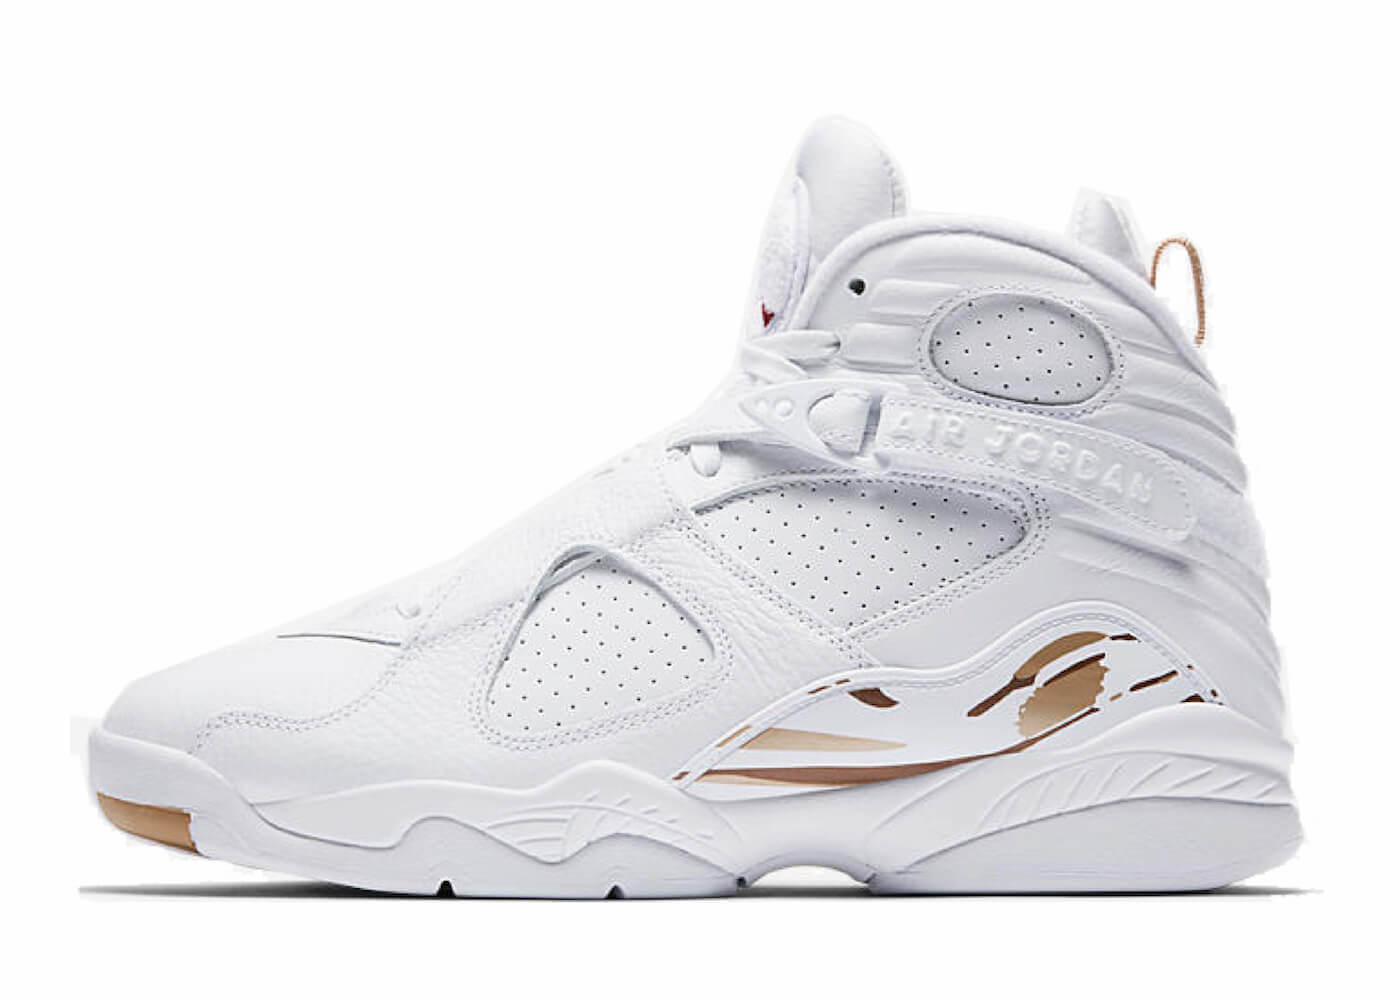 Nike Air Jordan 8 Retro OVO Whiteの写真